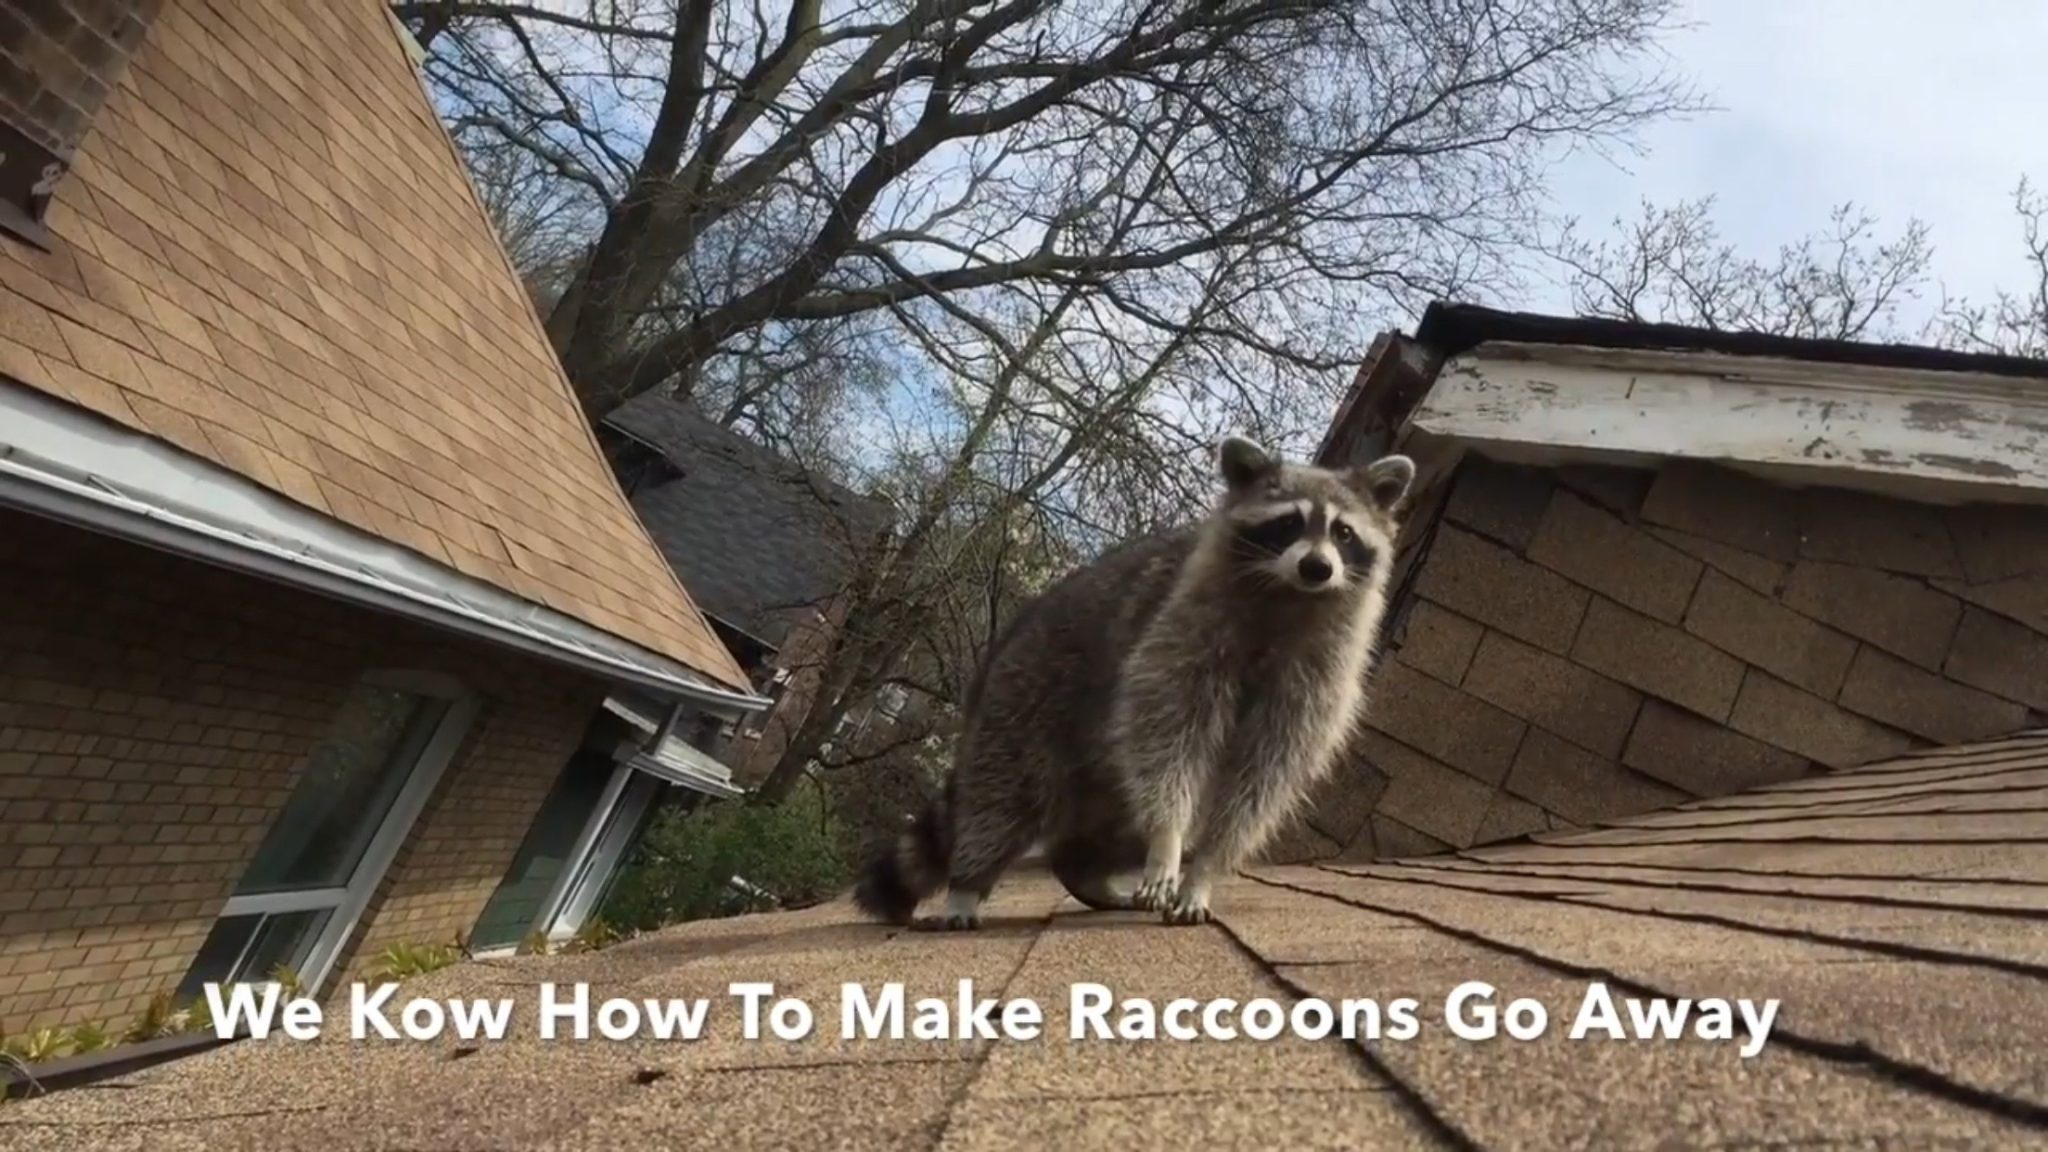 Best Wildlife Removal Toronto, Best Squirrel Removal Toronto, Best Raccoon Removal Companies, First-Rate Wildlife Control Toronto, Leading Animal Removal Company